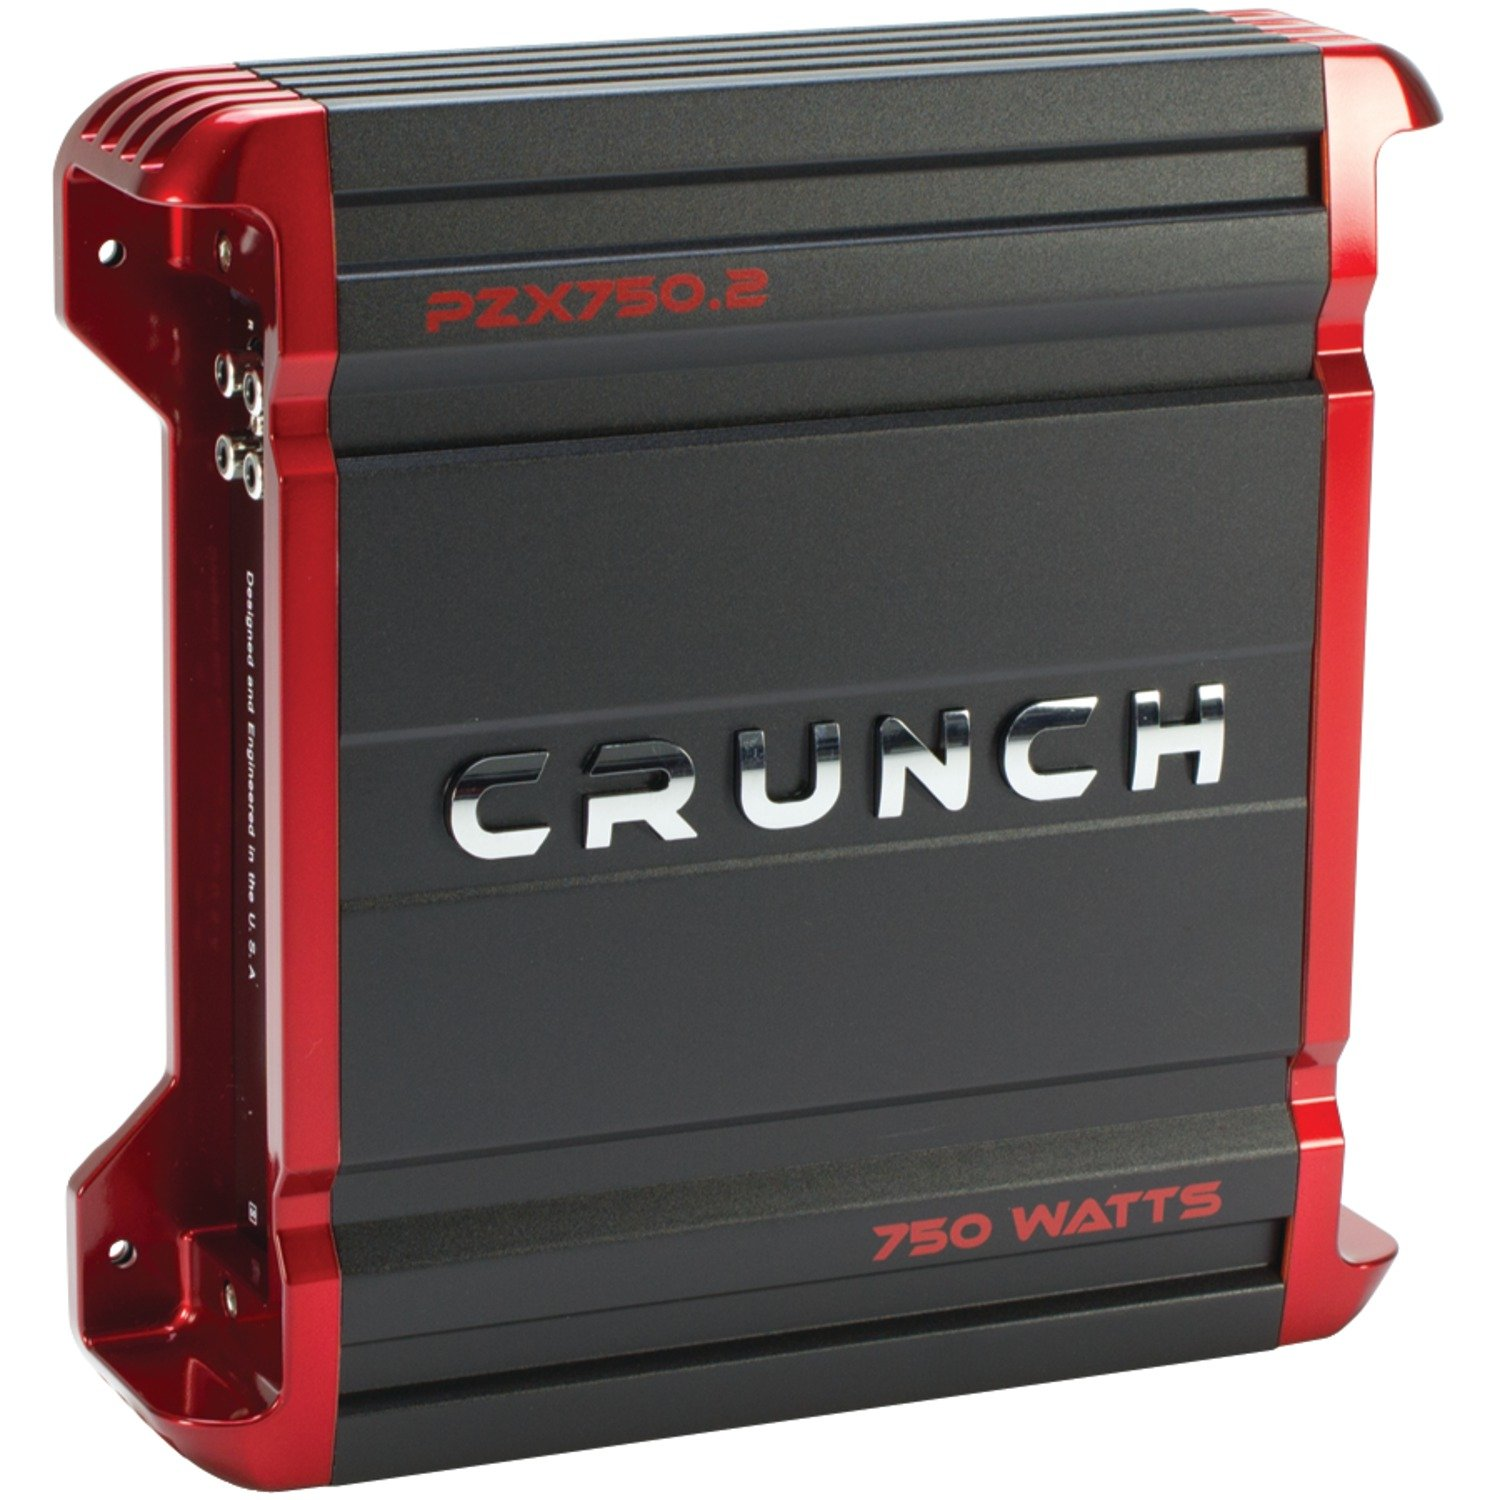 Amazon.com: CRUNCH PZX750.2 POWERZONE 2-Channel Class AB Amp (750 Watts):  Musical Instruments